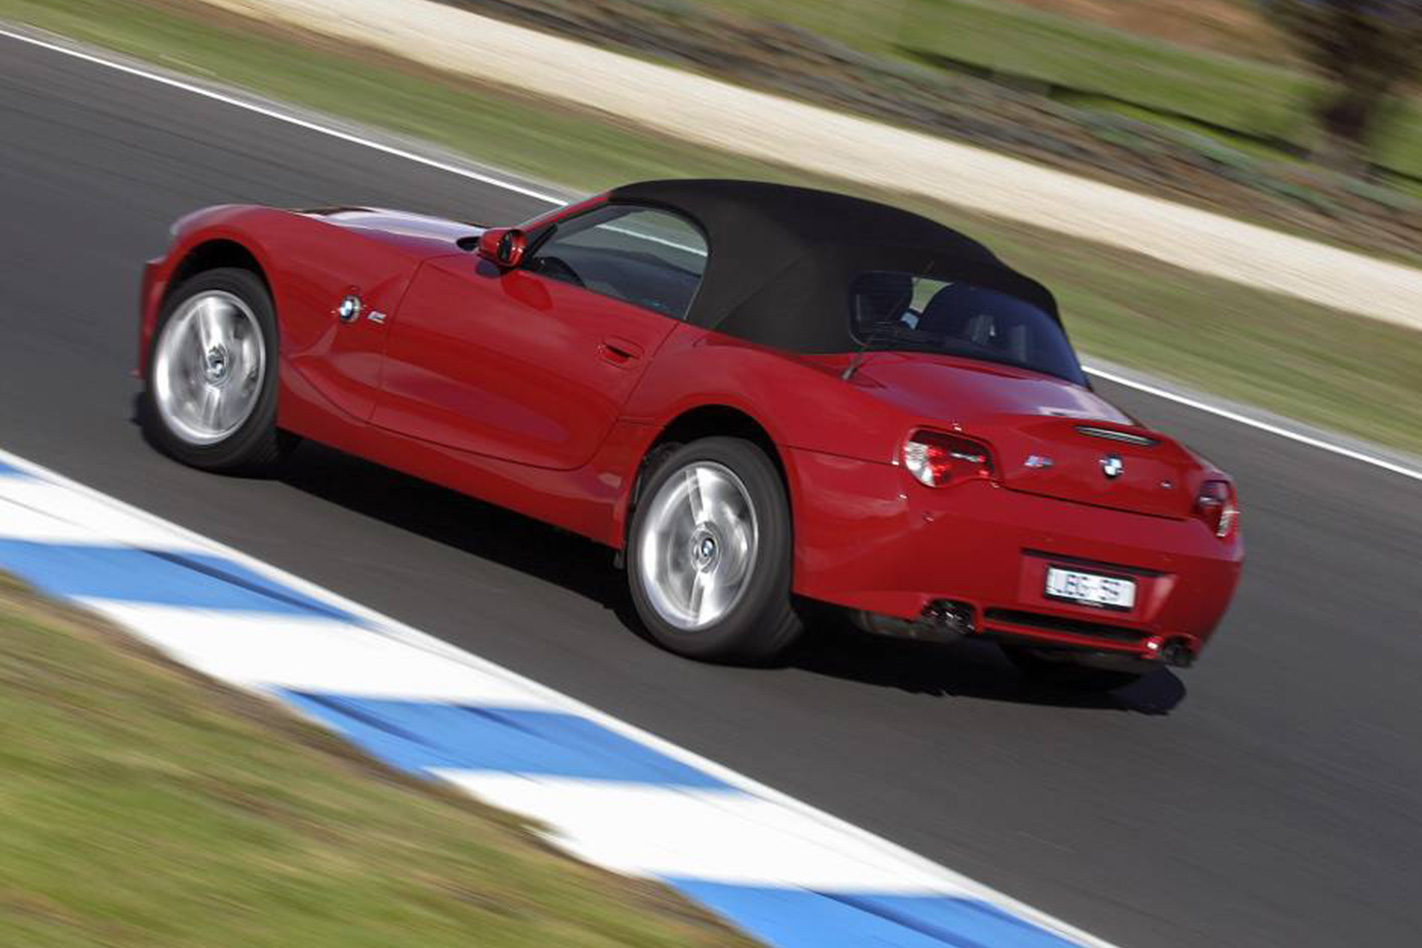 BMW Z4 M at the track